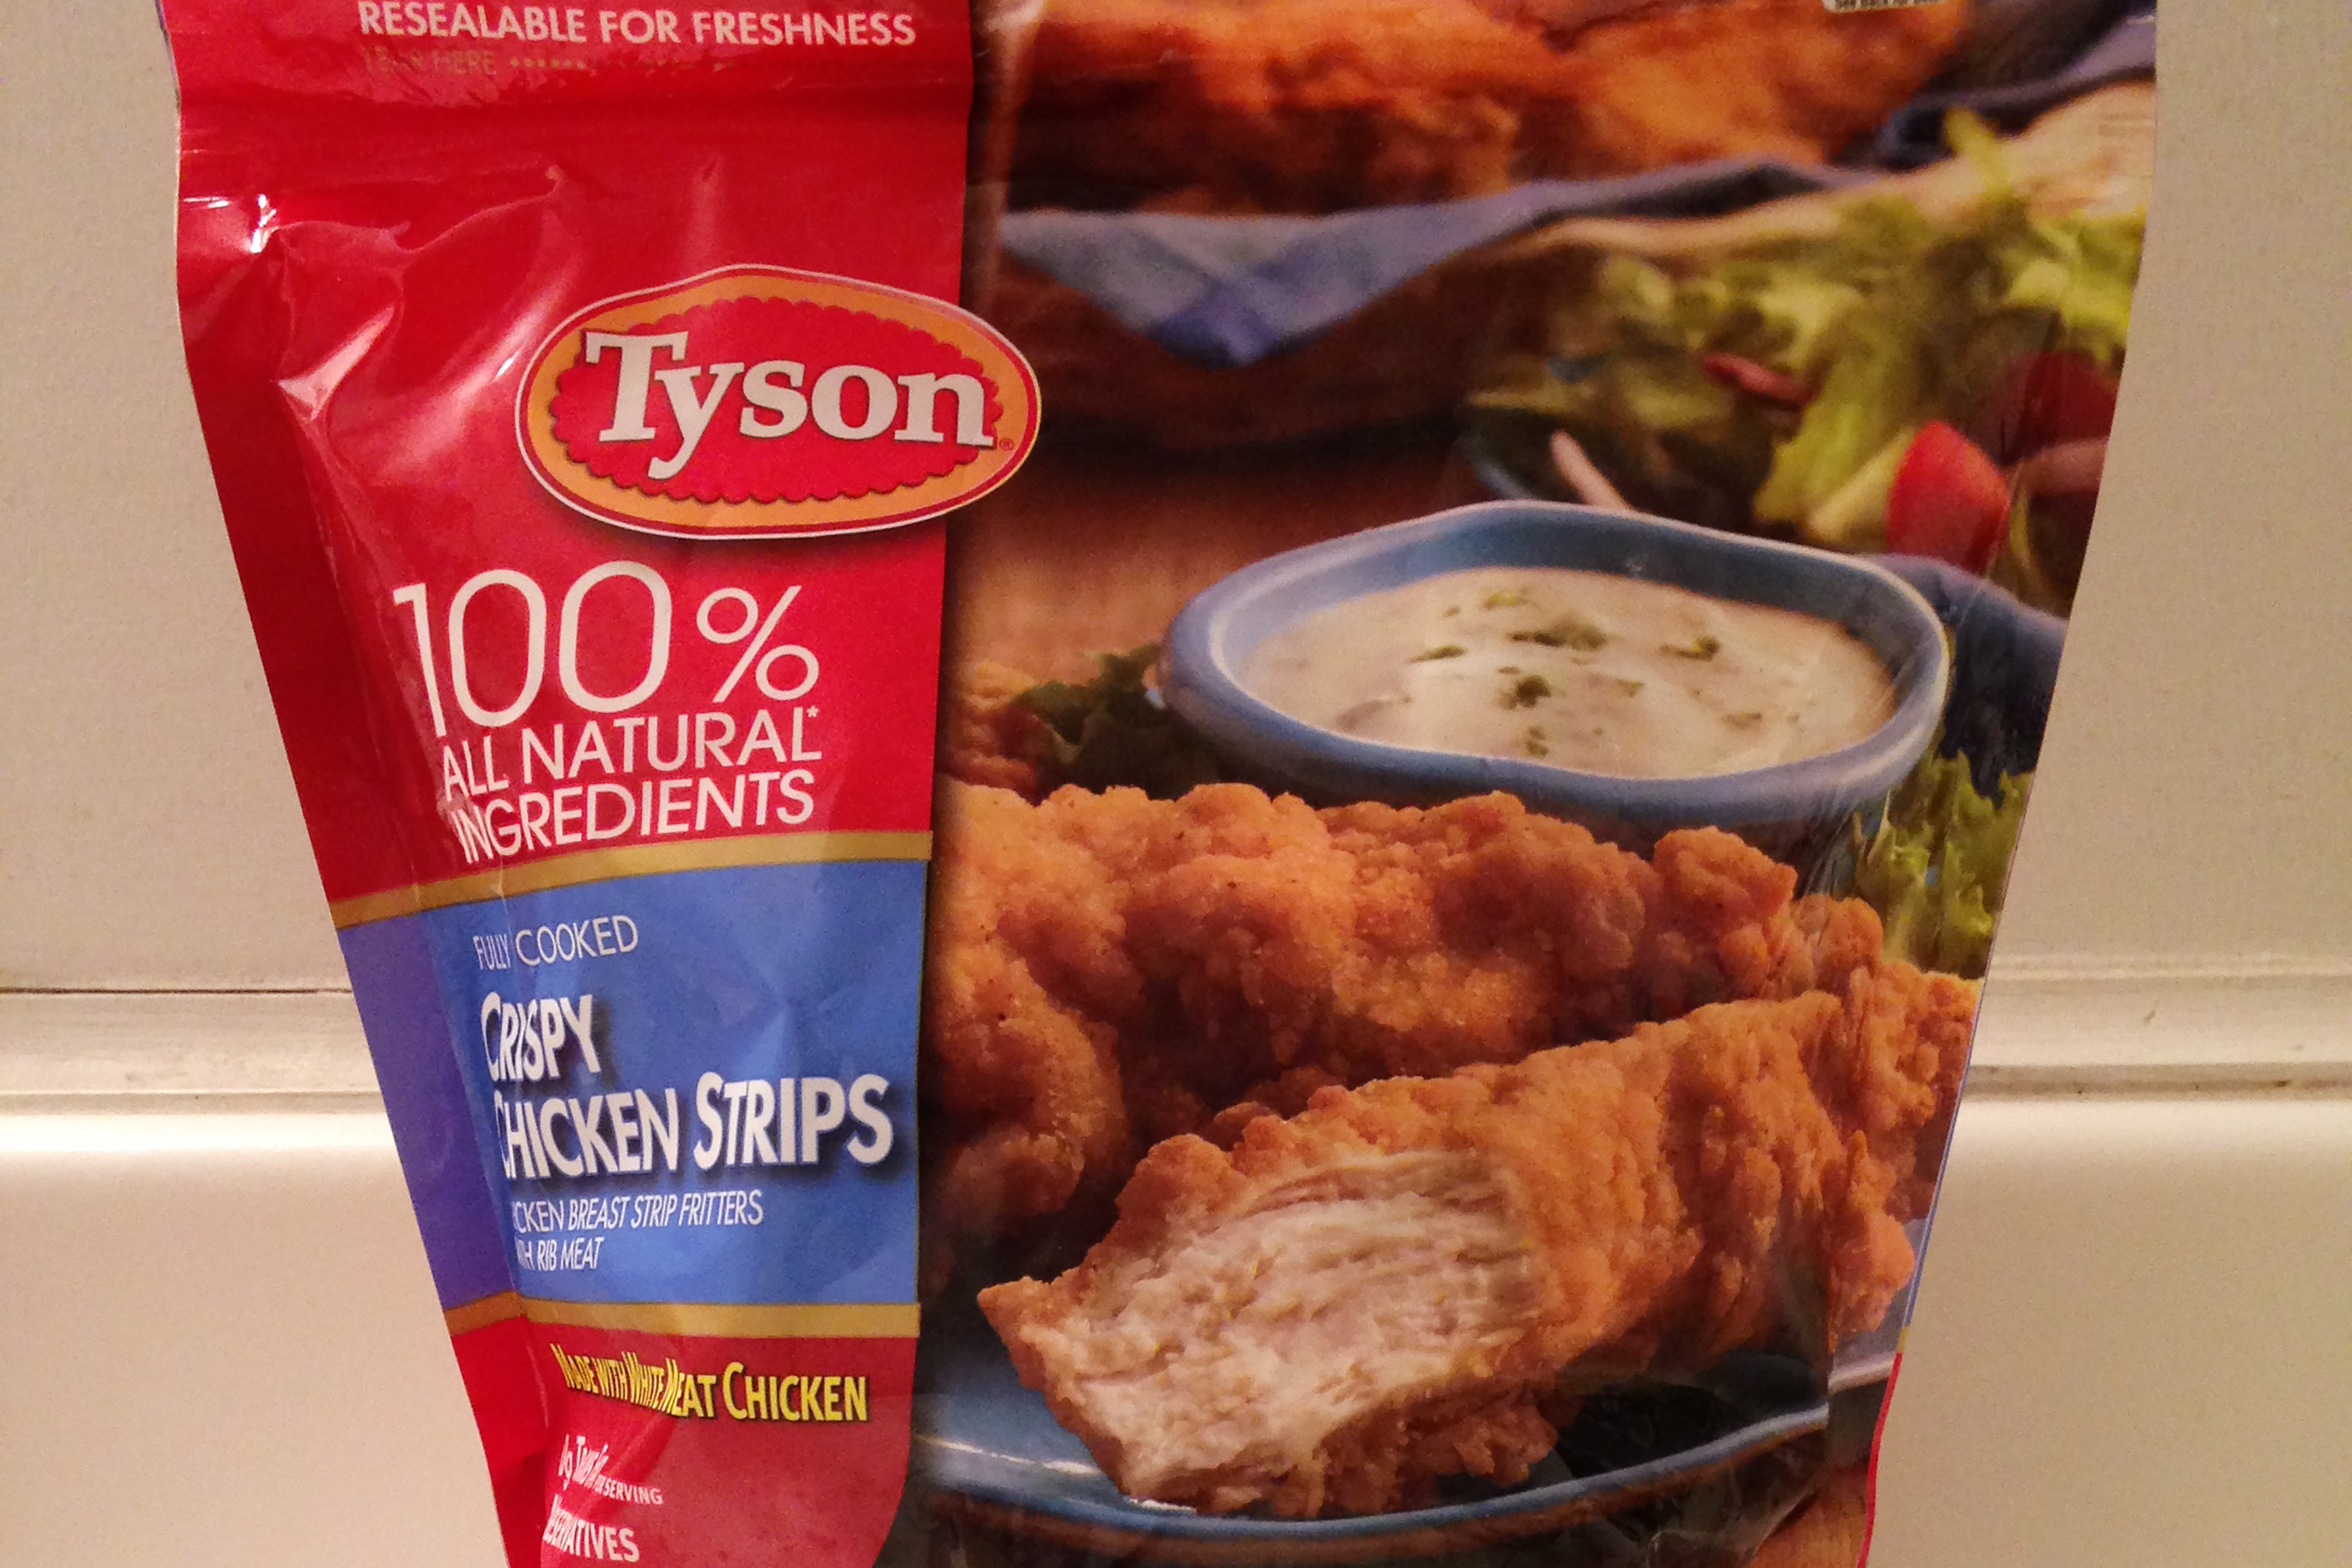 Tyson Crispy Chicken Strips Recalled